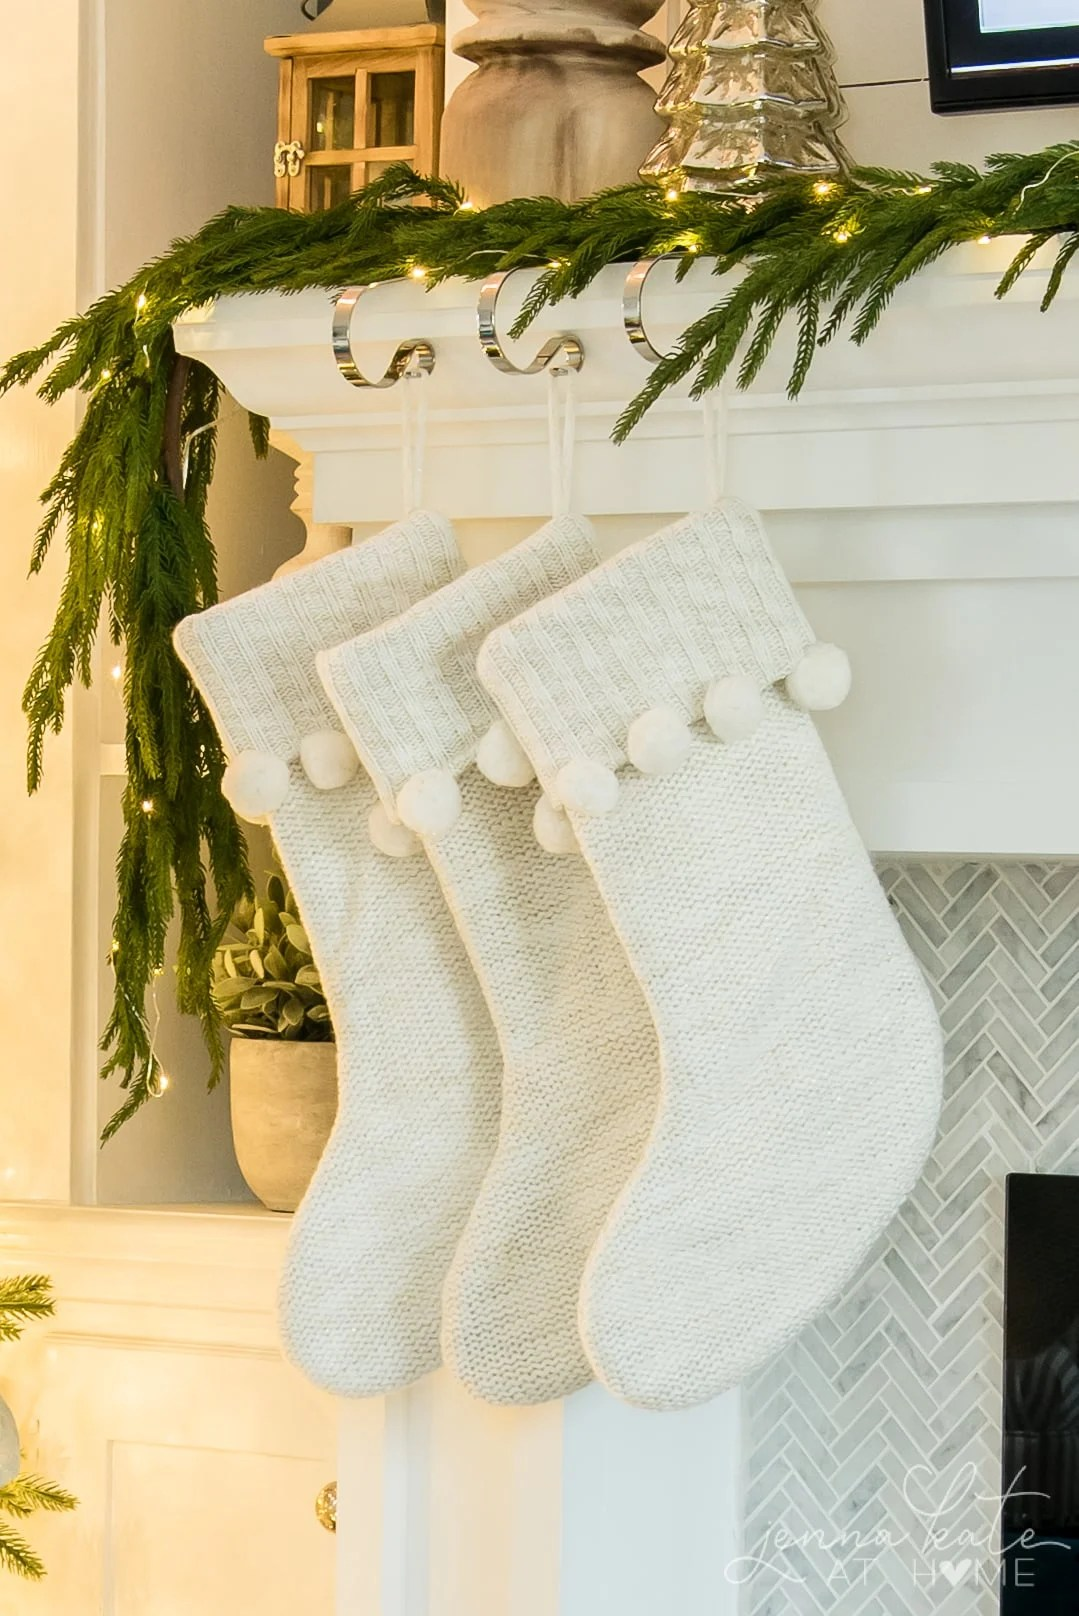 White knit stockings with pom poms hung on the mantel